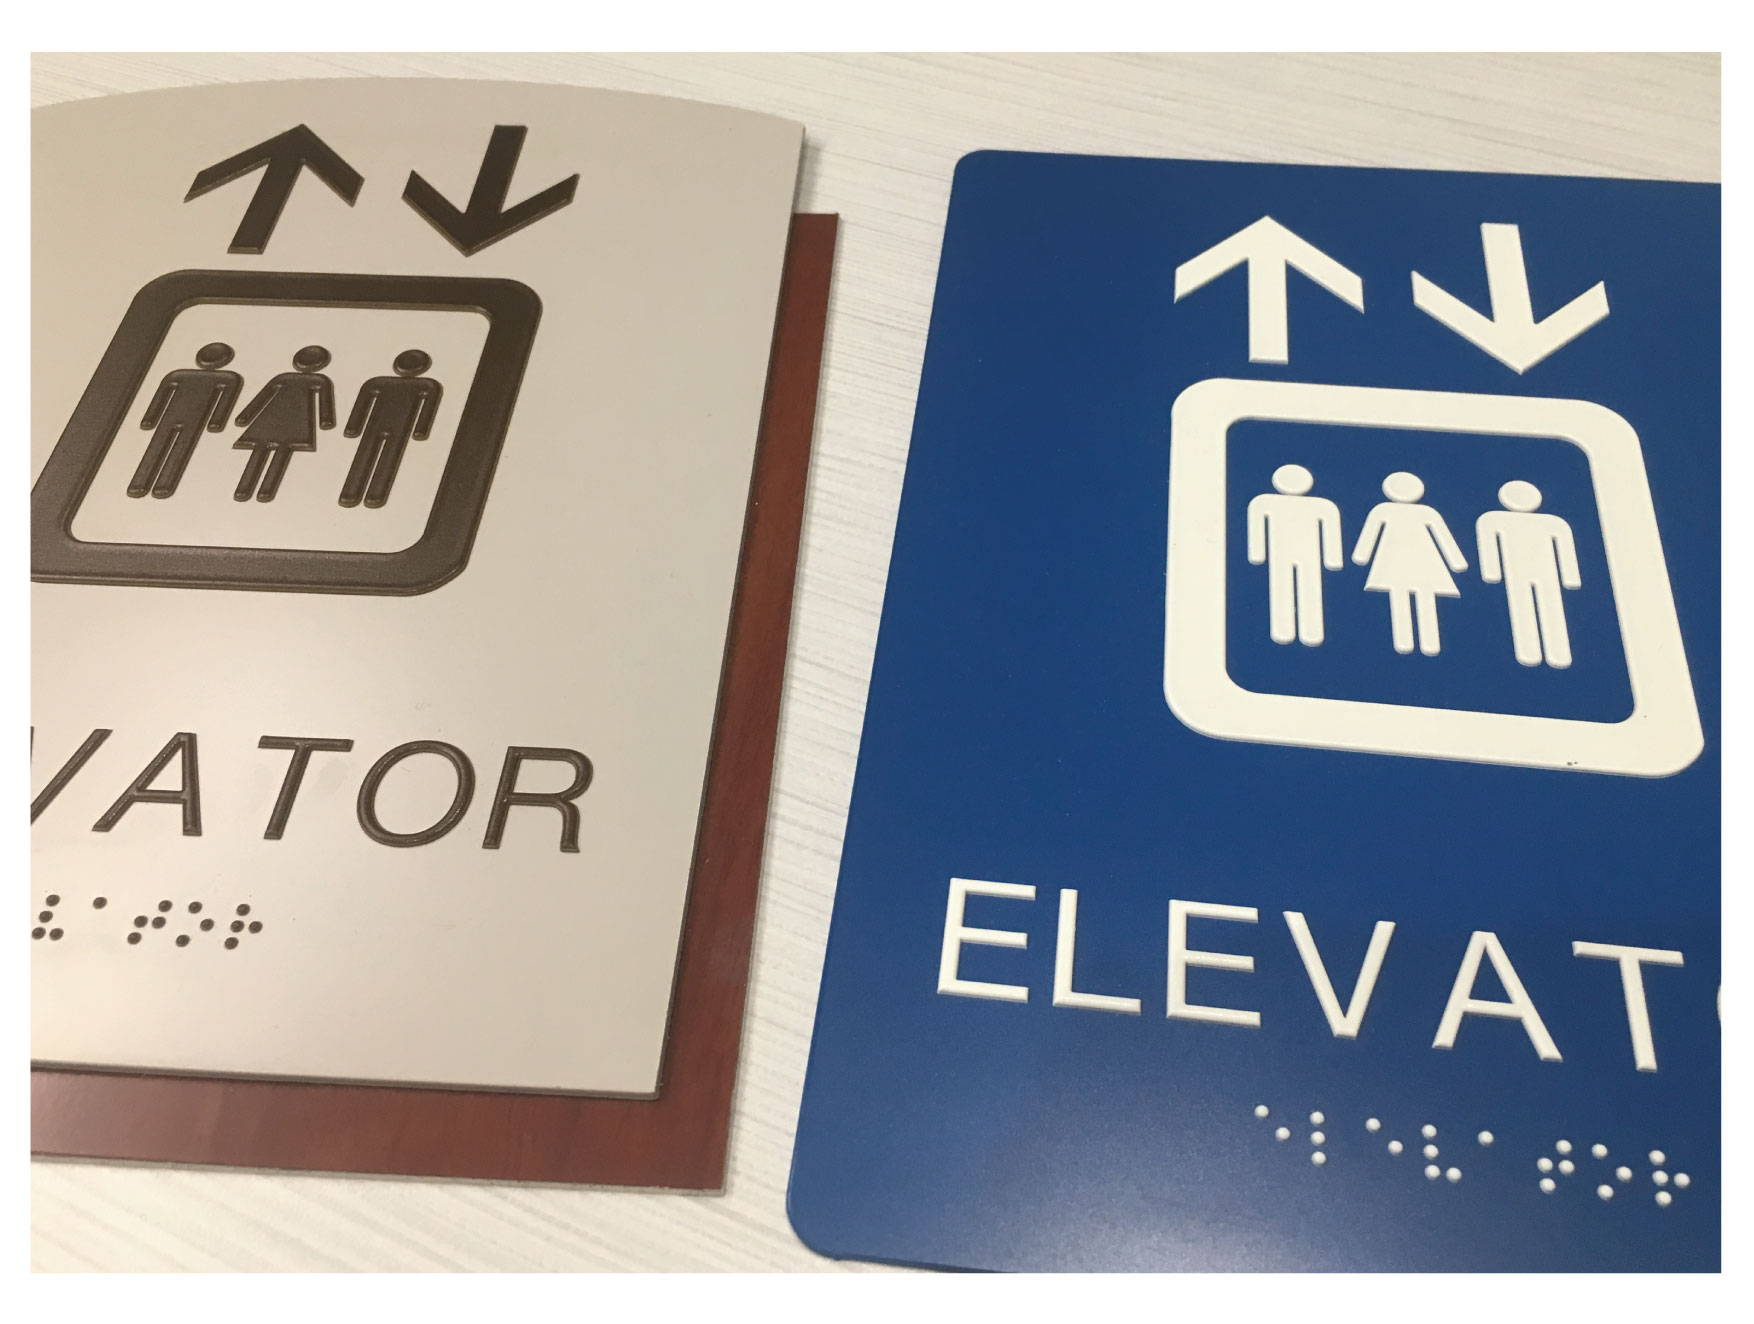 ADA Elevator Signs with Grade II Braille, Compliant ADA Signs